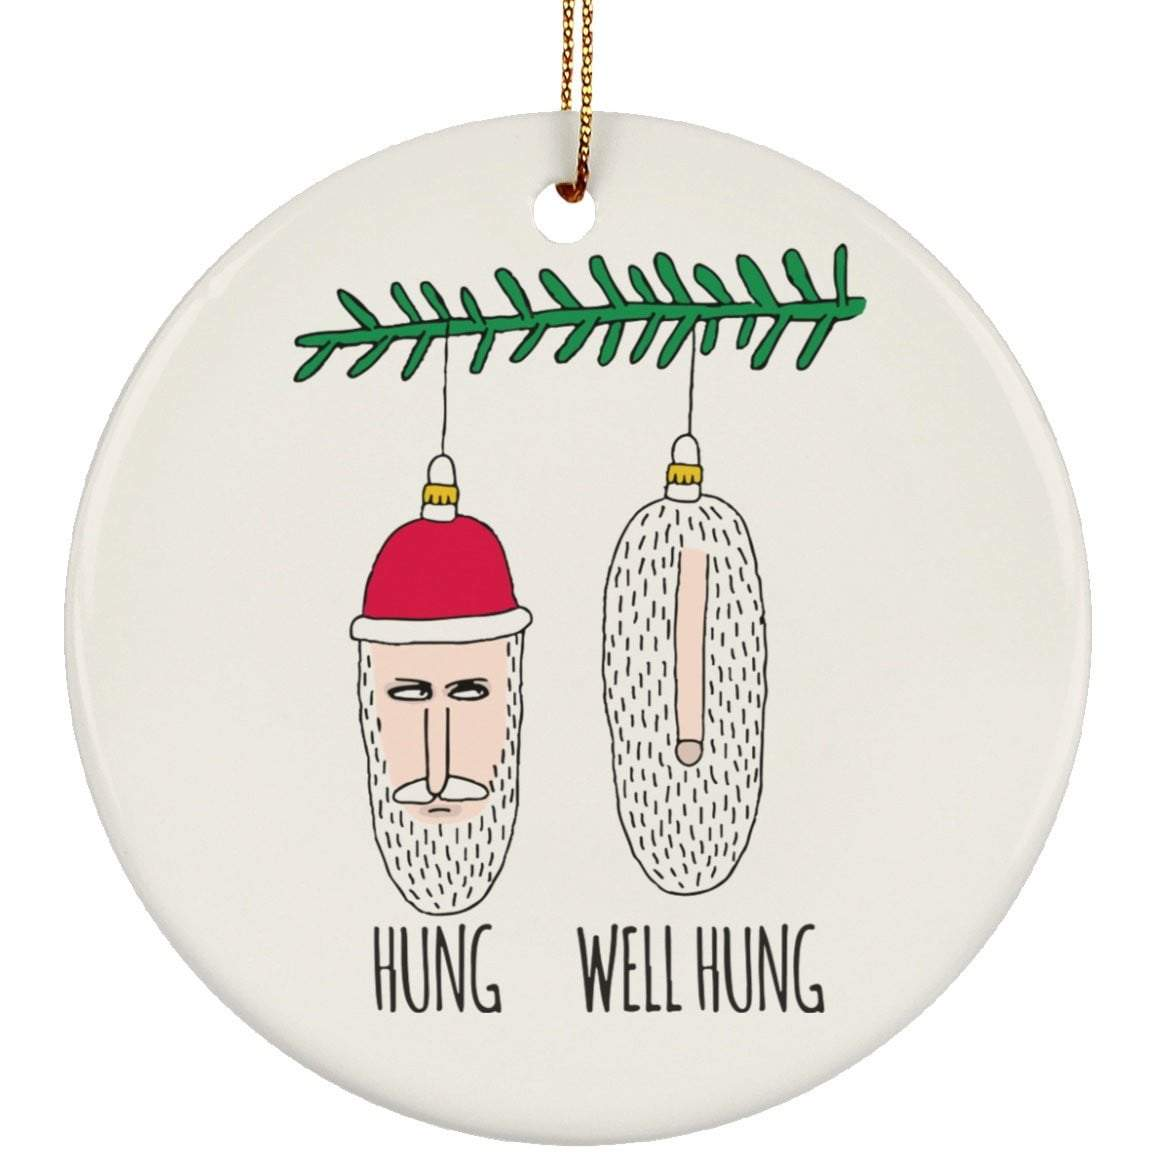 HUNG WELL HUNG Christmas Ceramic Circle Ornament